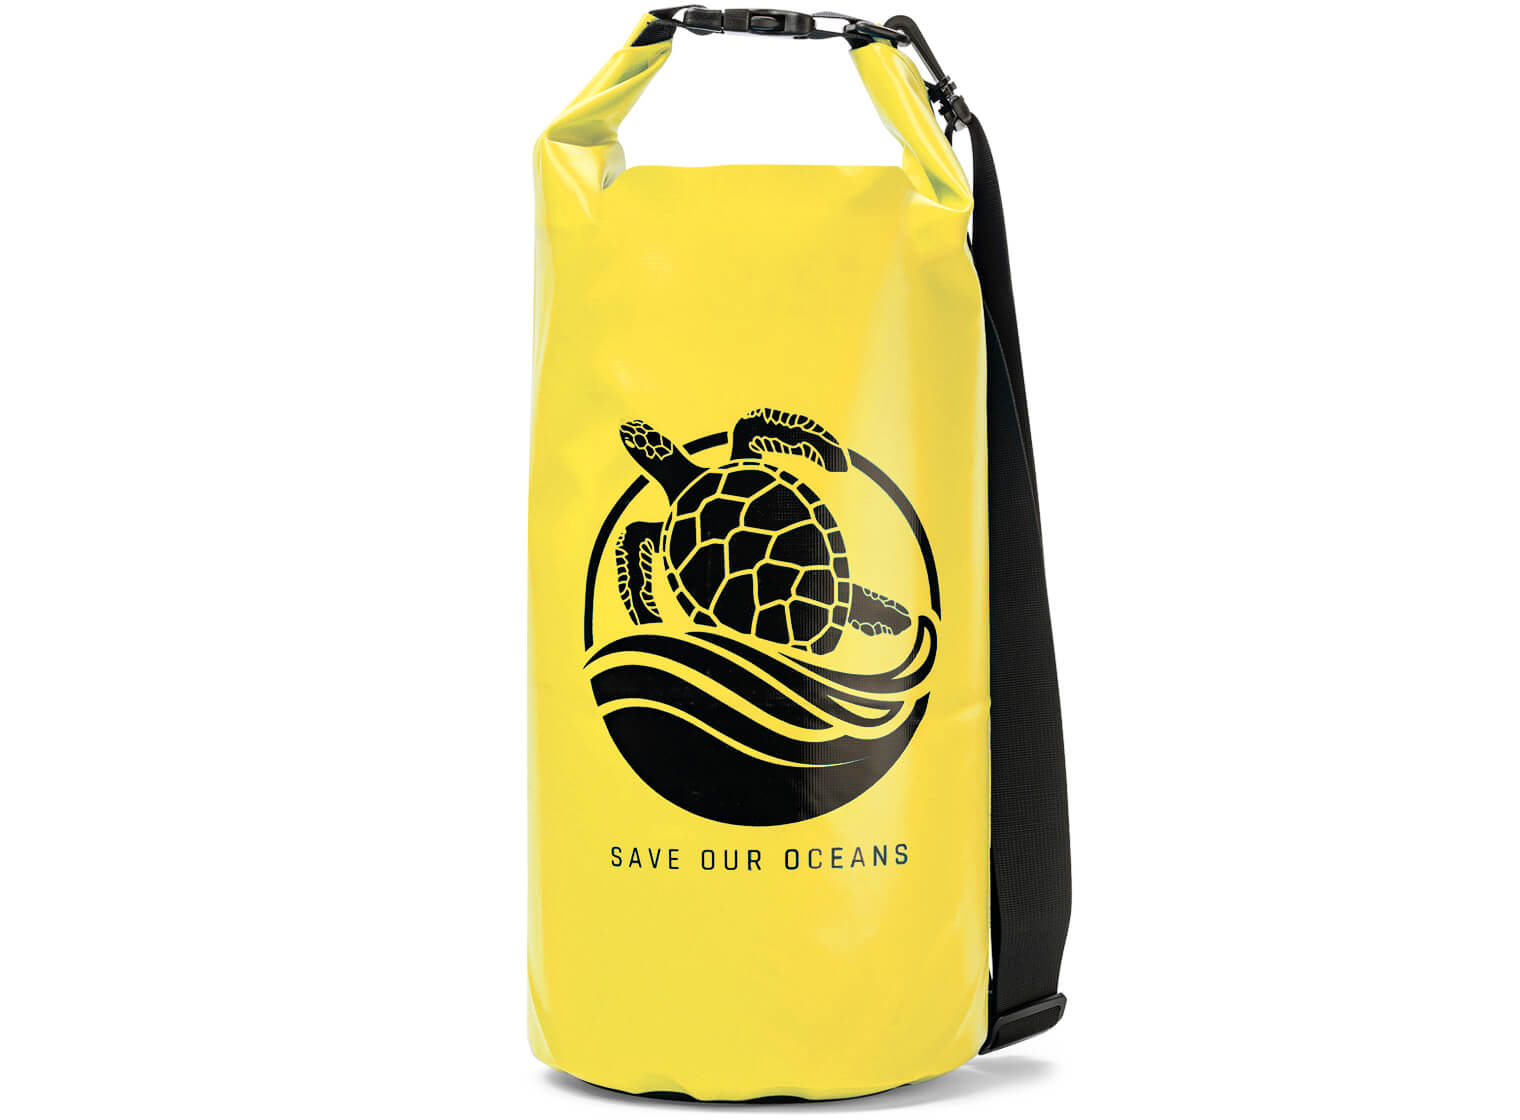 GILI Waterproof Dry Bag